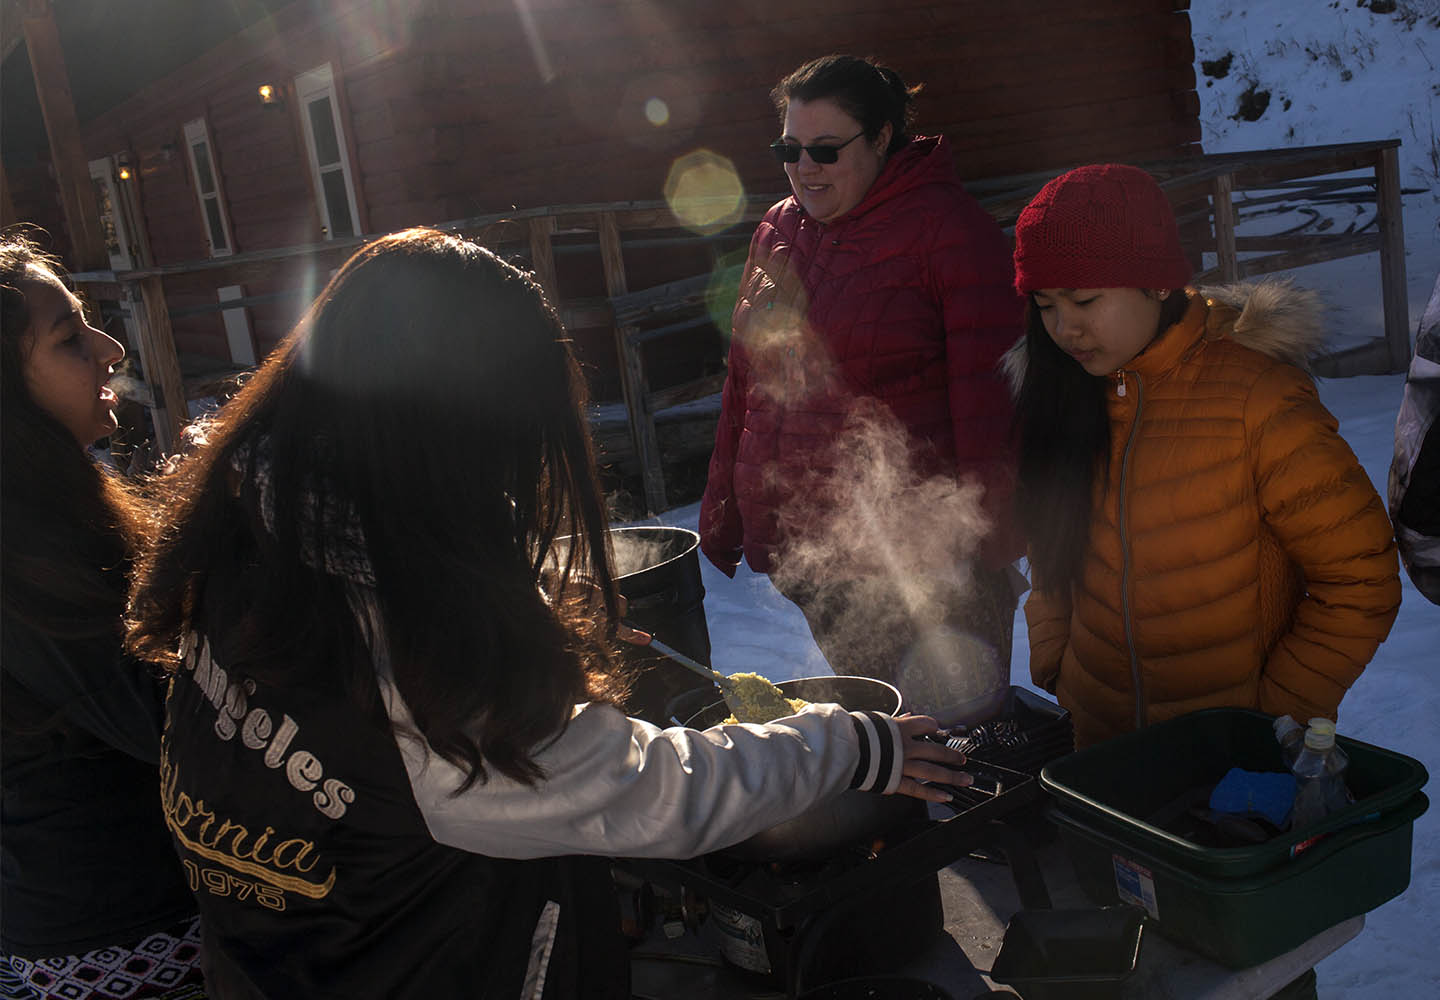 Nirshika Neopany, 14, left, Sapana Rai, 14, middle, Jamie Stanley, 33, and Susmita Limbu, 14, right, prepare breakfast at Camp Alexander at Lake George, Colo. on Feb. 17, 2017. The camp is run by the Boy Scouts of America.